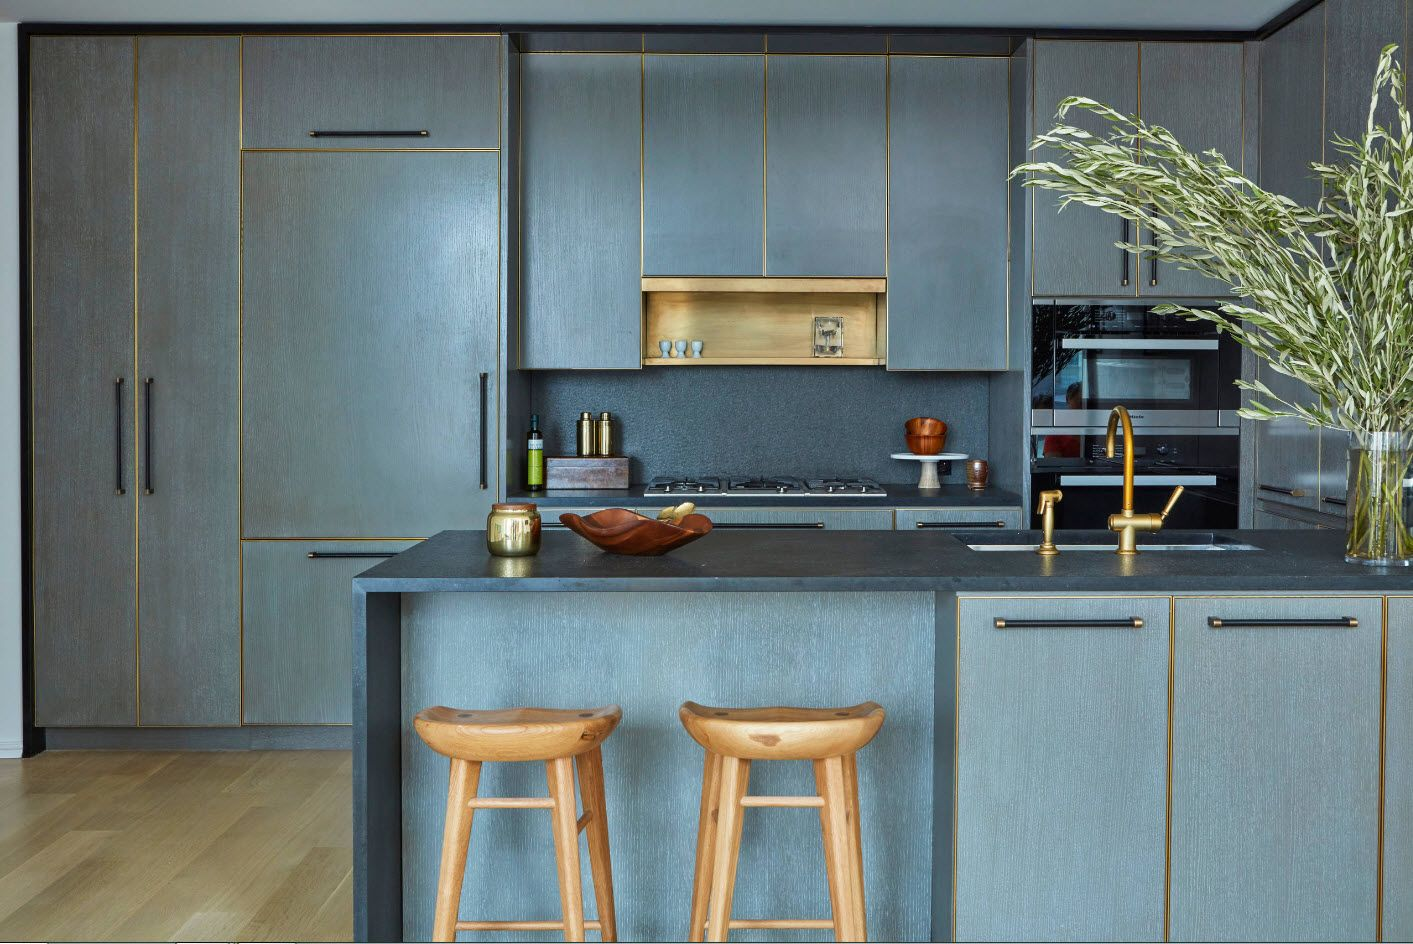 Concrete color is dominating for this modern kitchen interior decoration